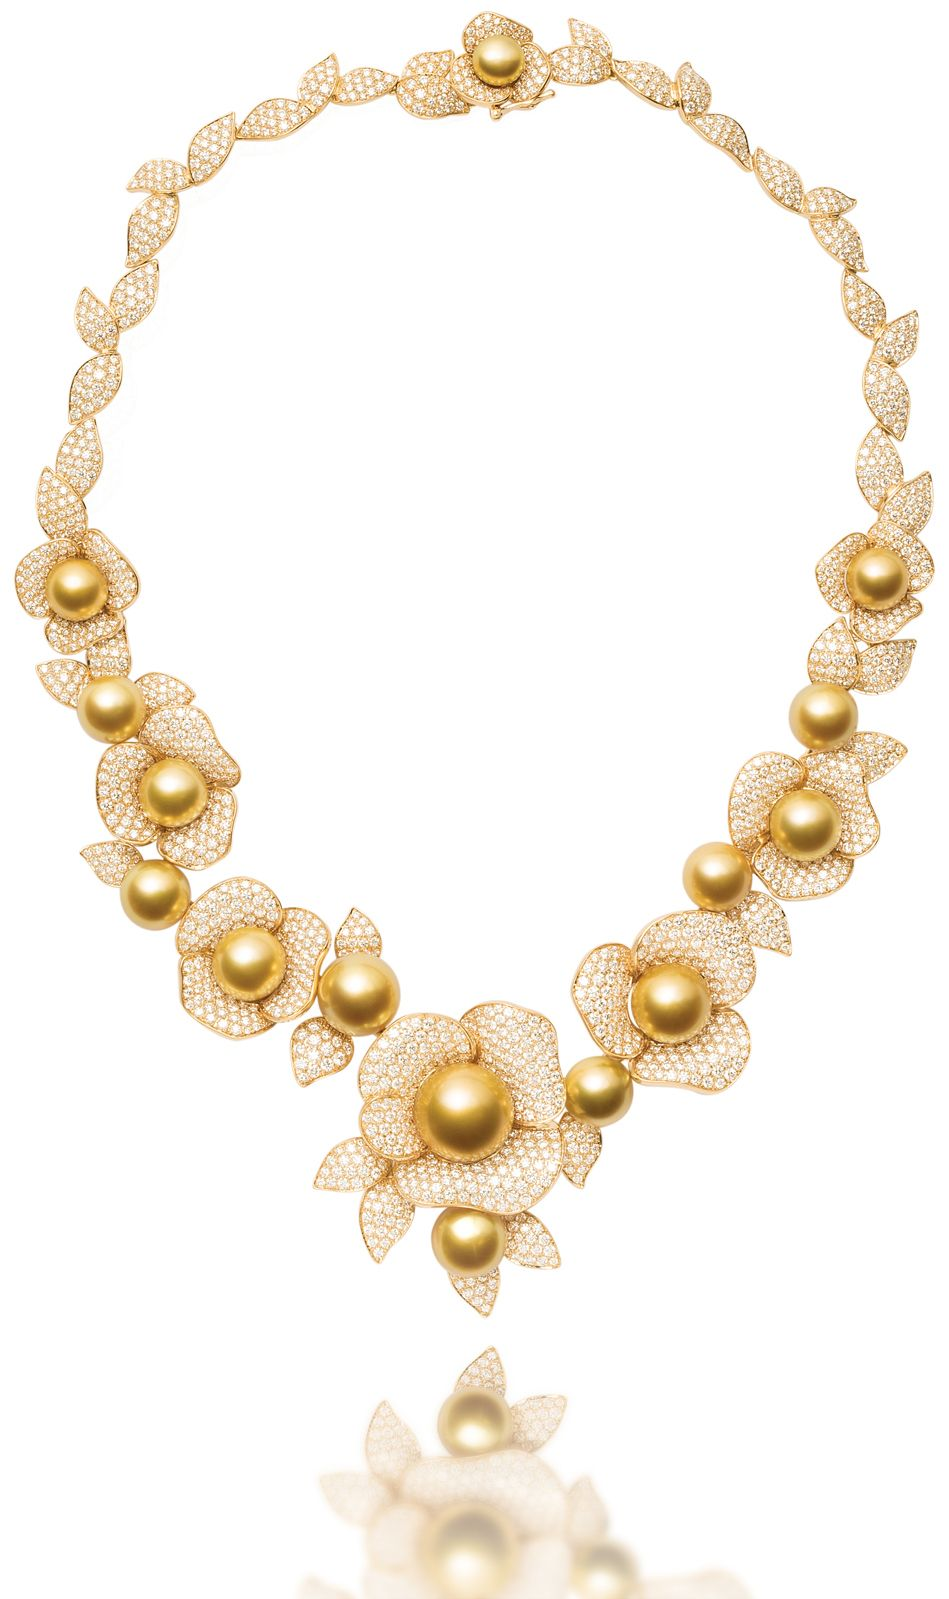 pearls bracelet golden exclusive jff jewelry collection homeware